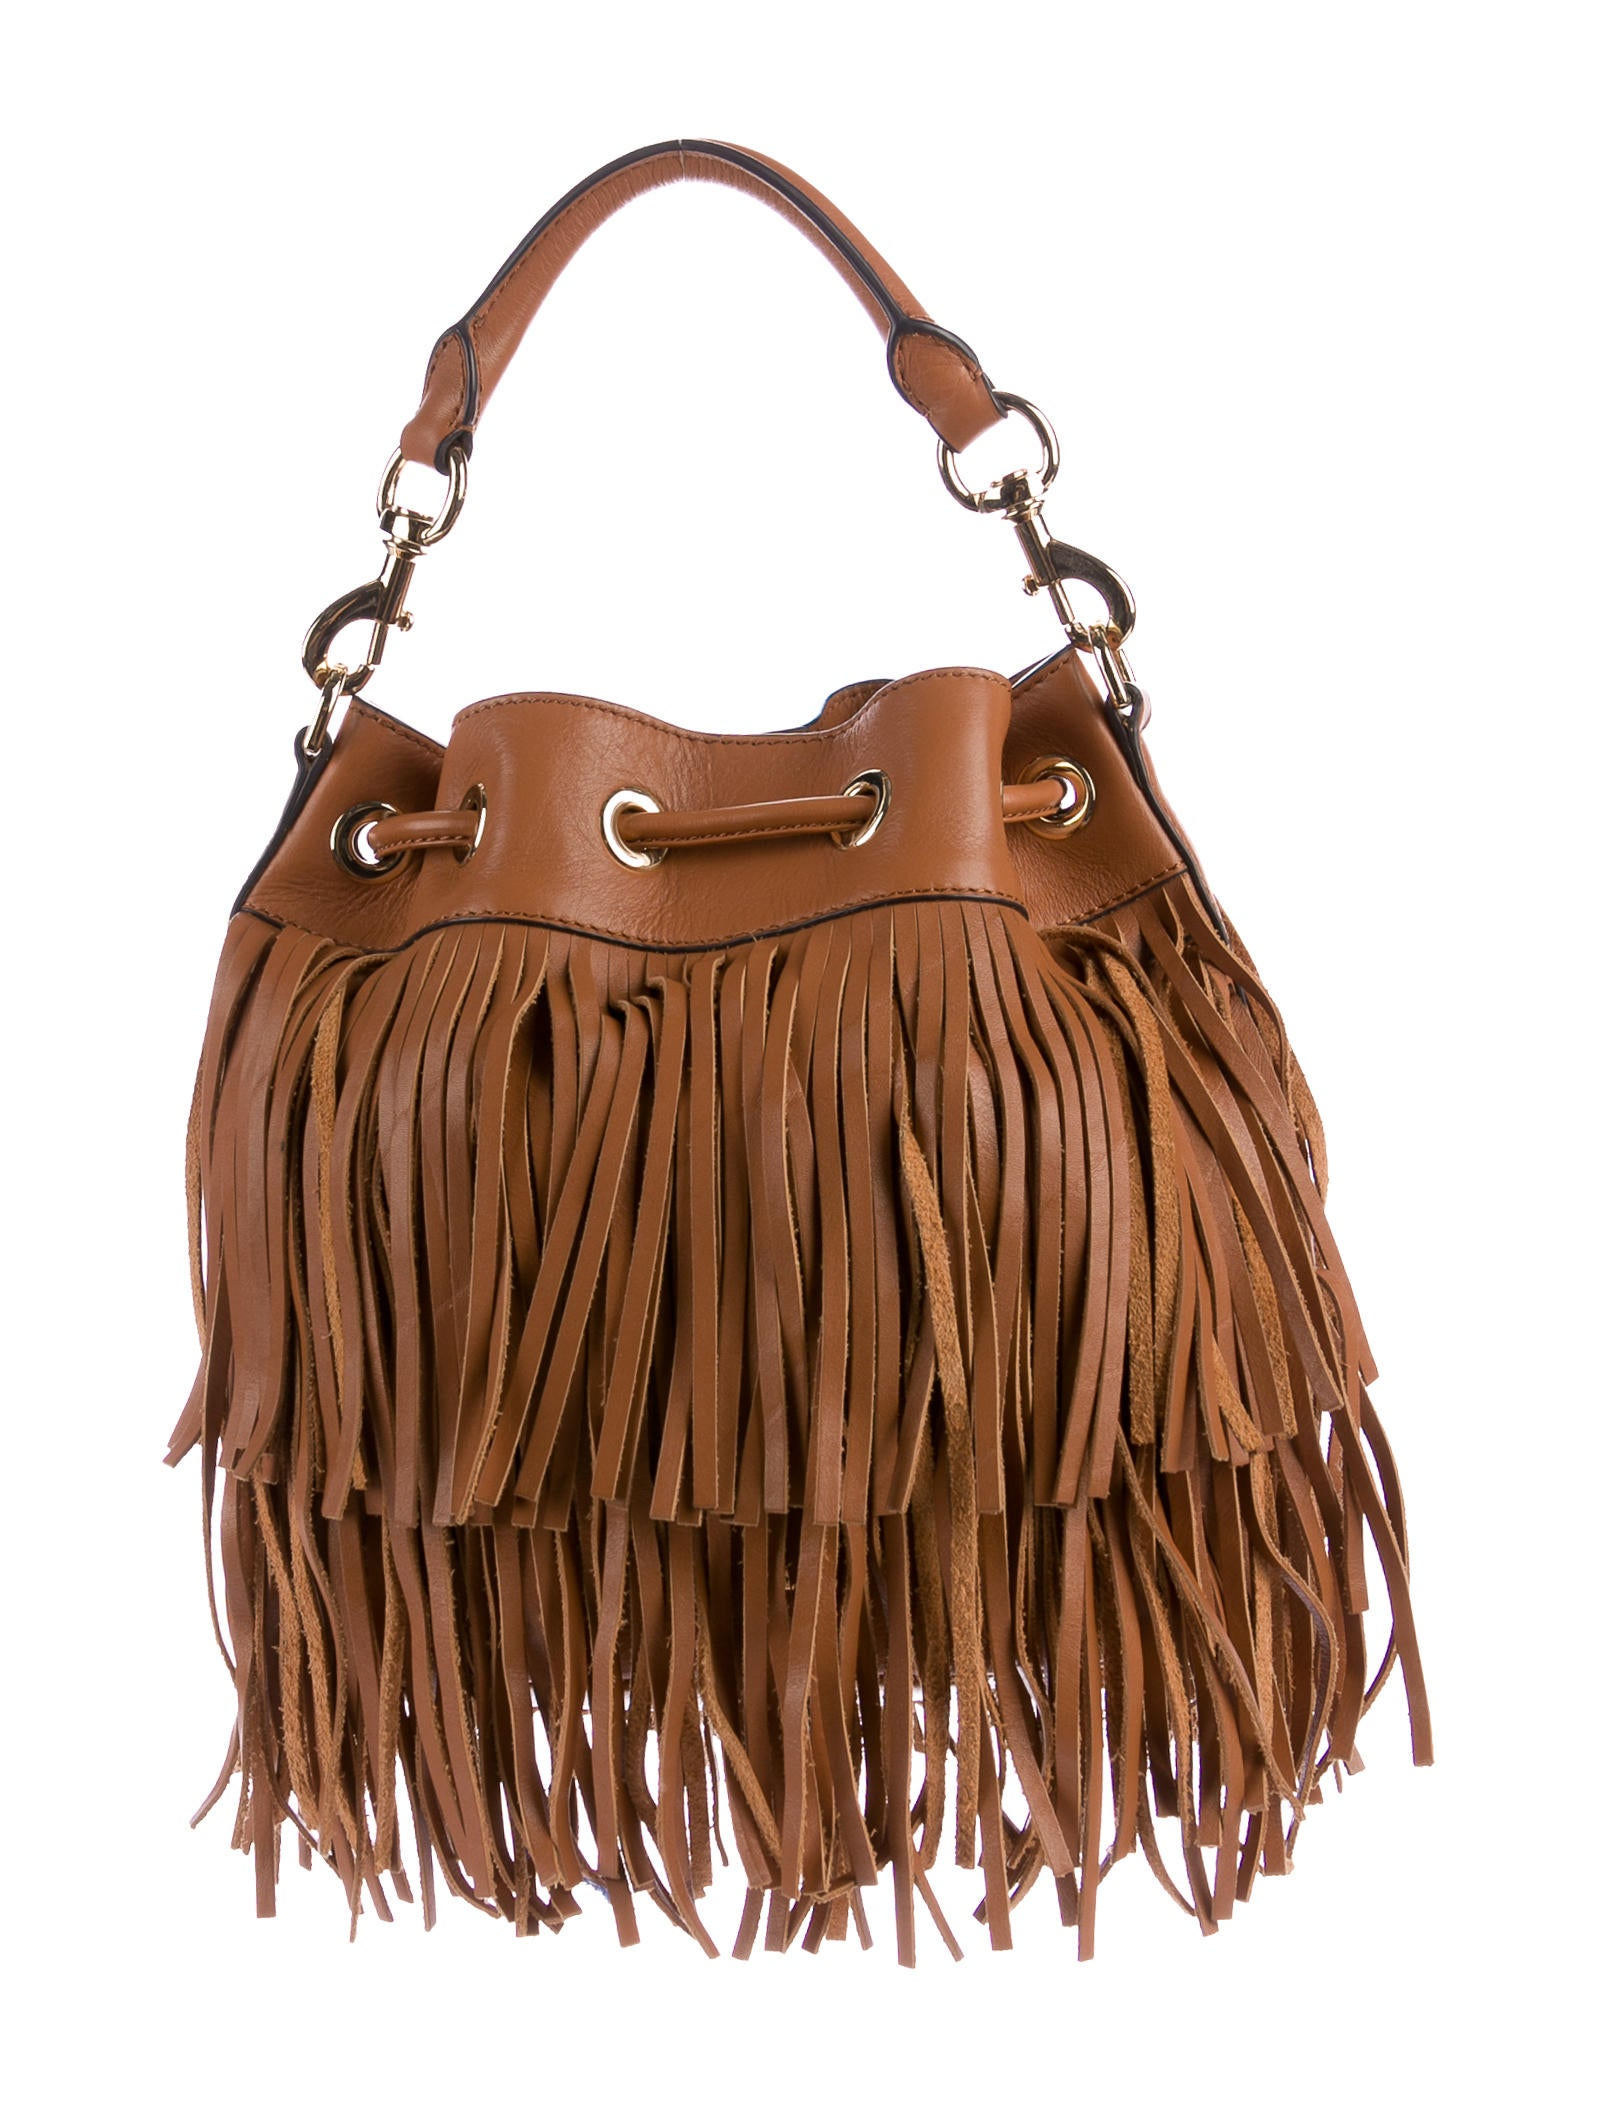 Get the fringe look in a style that is proven to be timeless. The Proenza Schouler PS1 mail bag is a classic that ups the cool factor in every outfit.